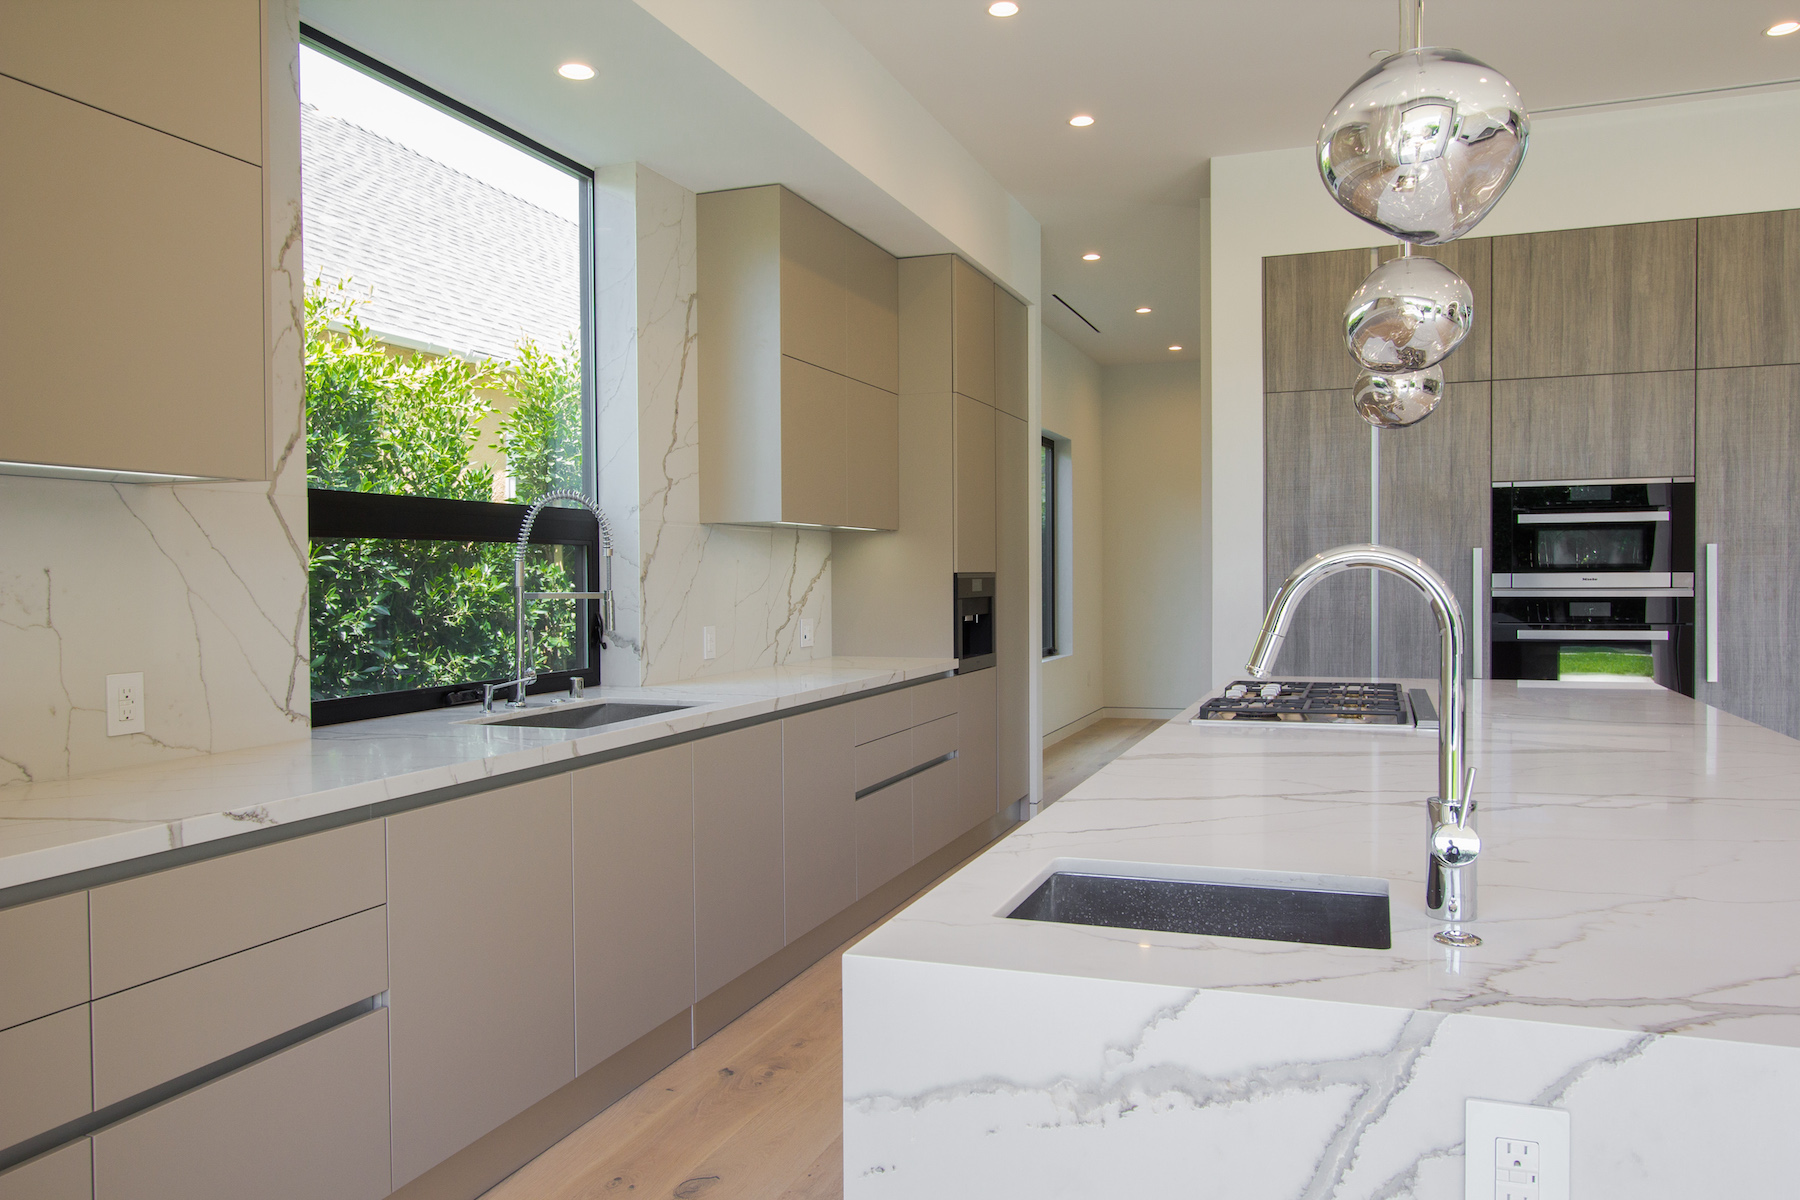 WestHollywood_Modern_2b_sm